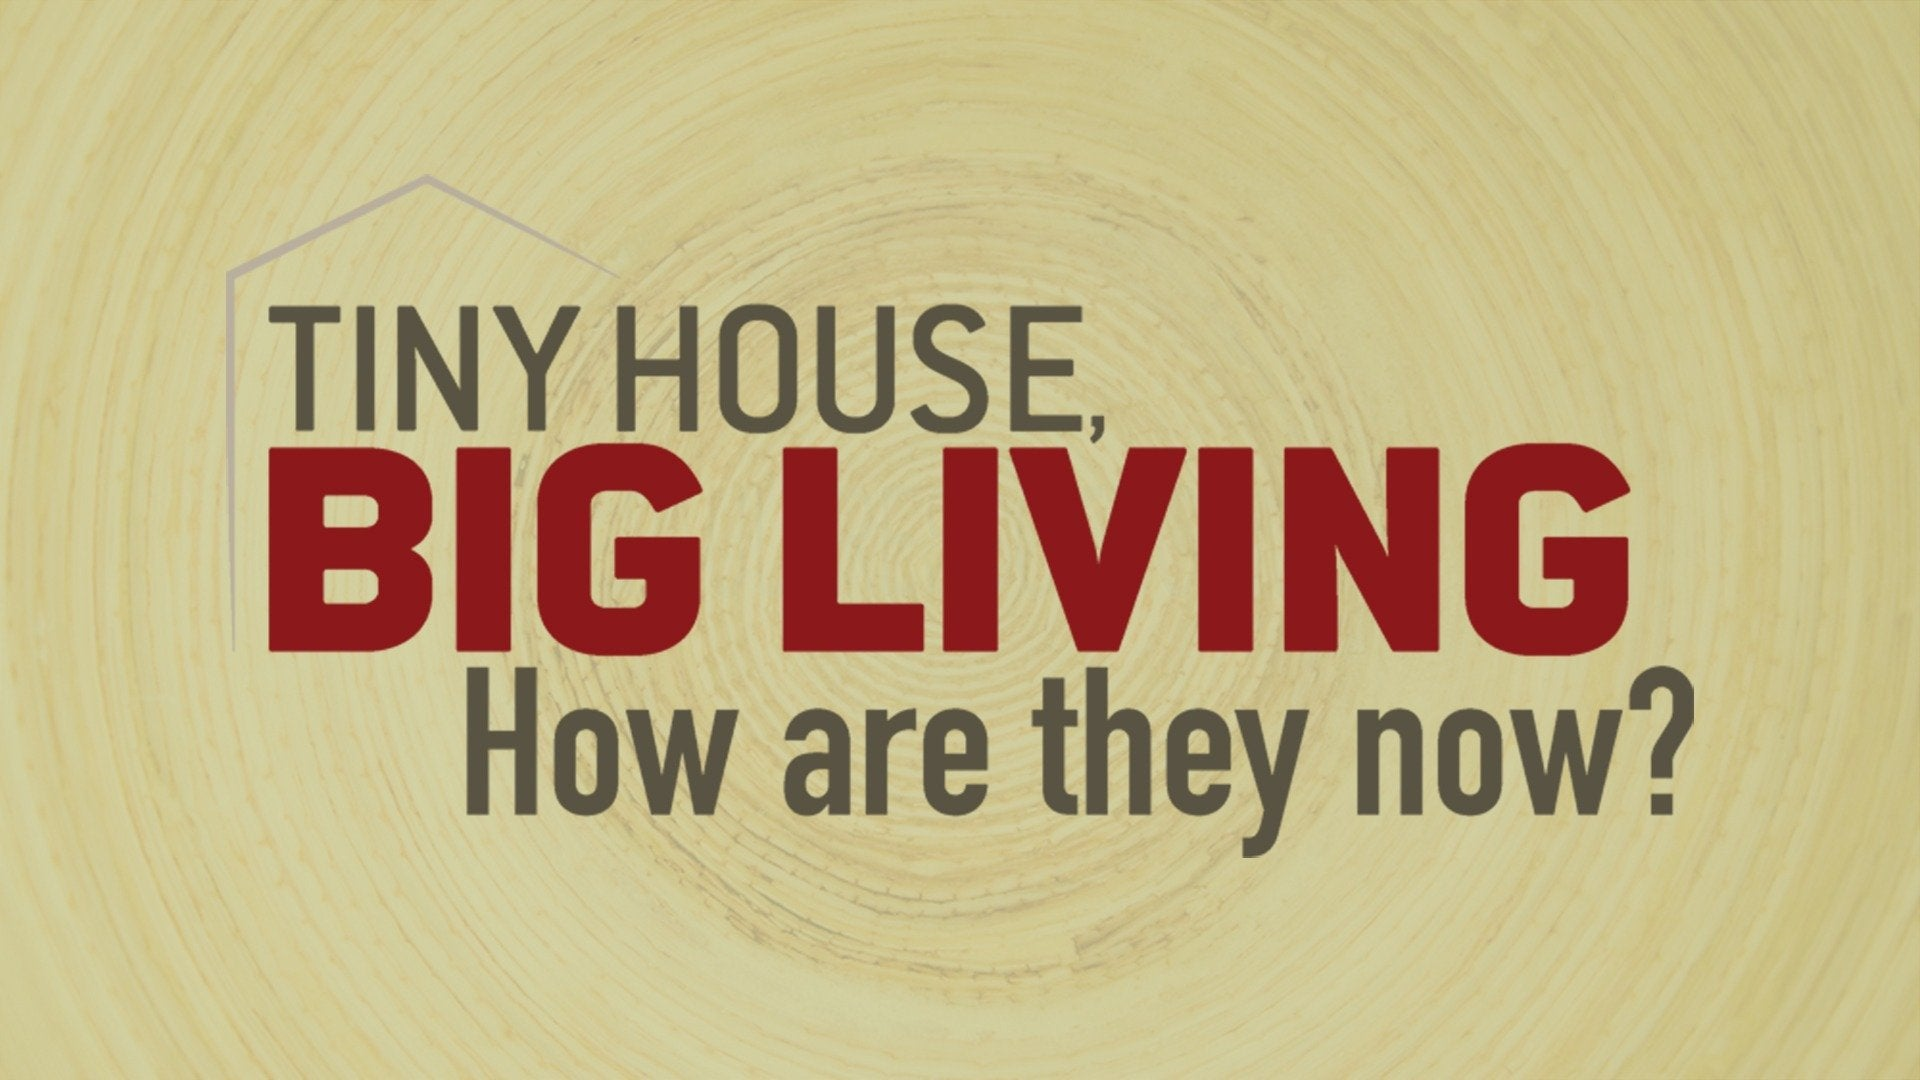 Tiny House, Big Living: How Are They Now?